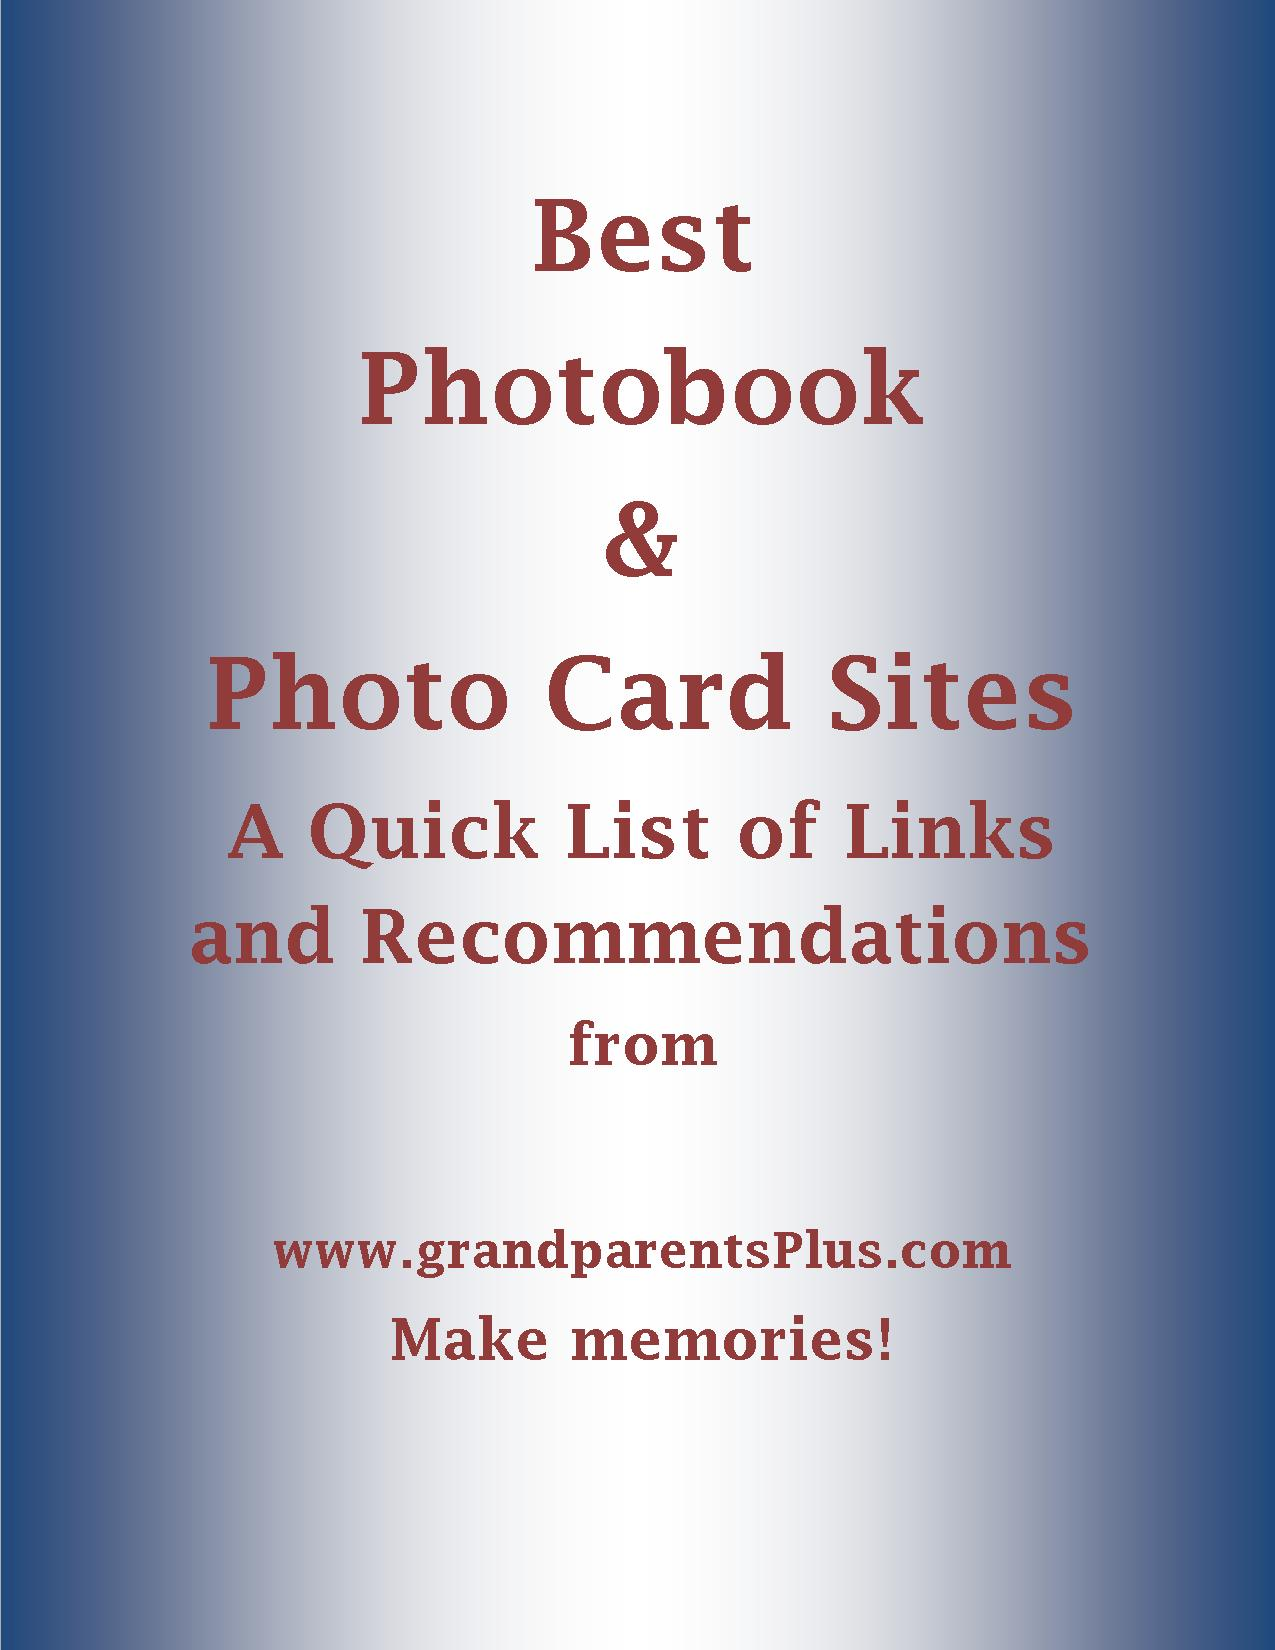 photobook photo card sites links and recommendations